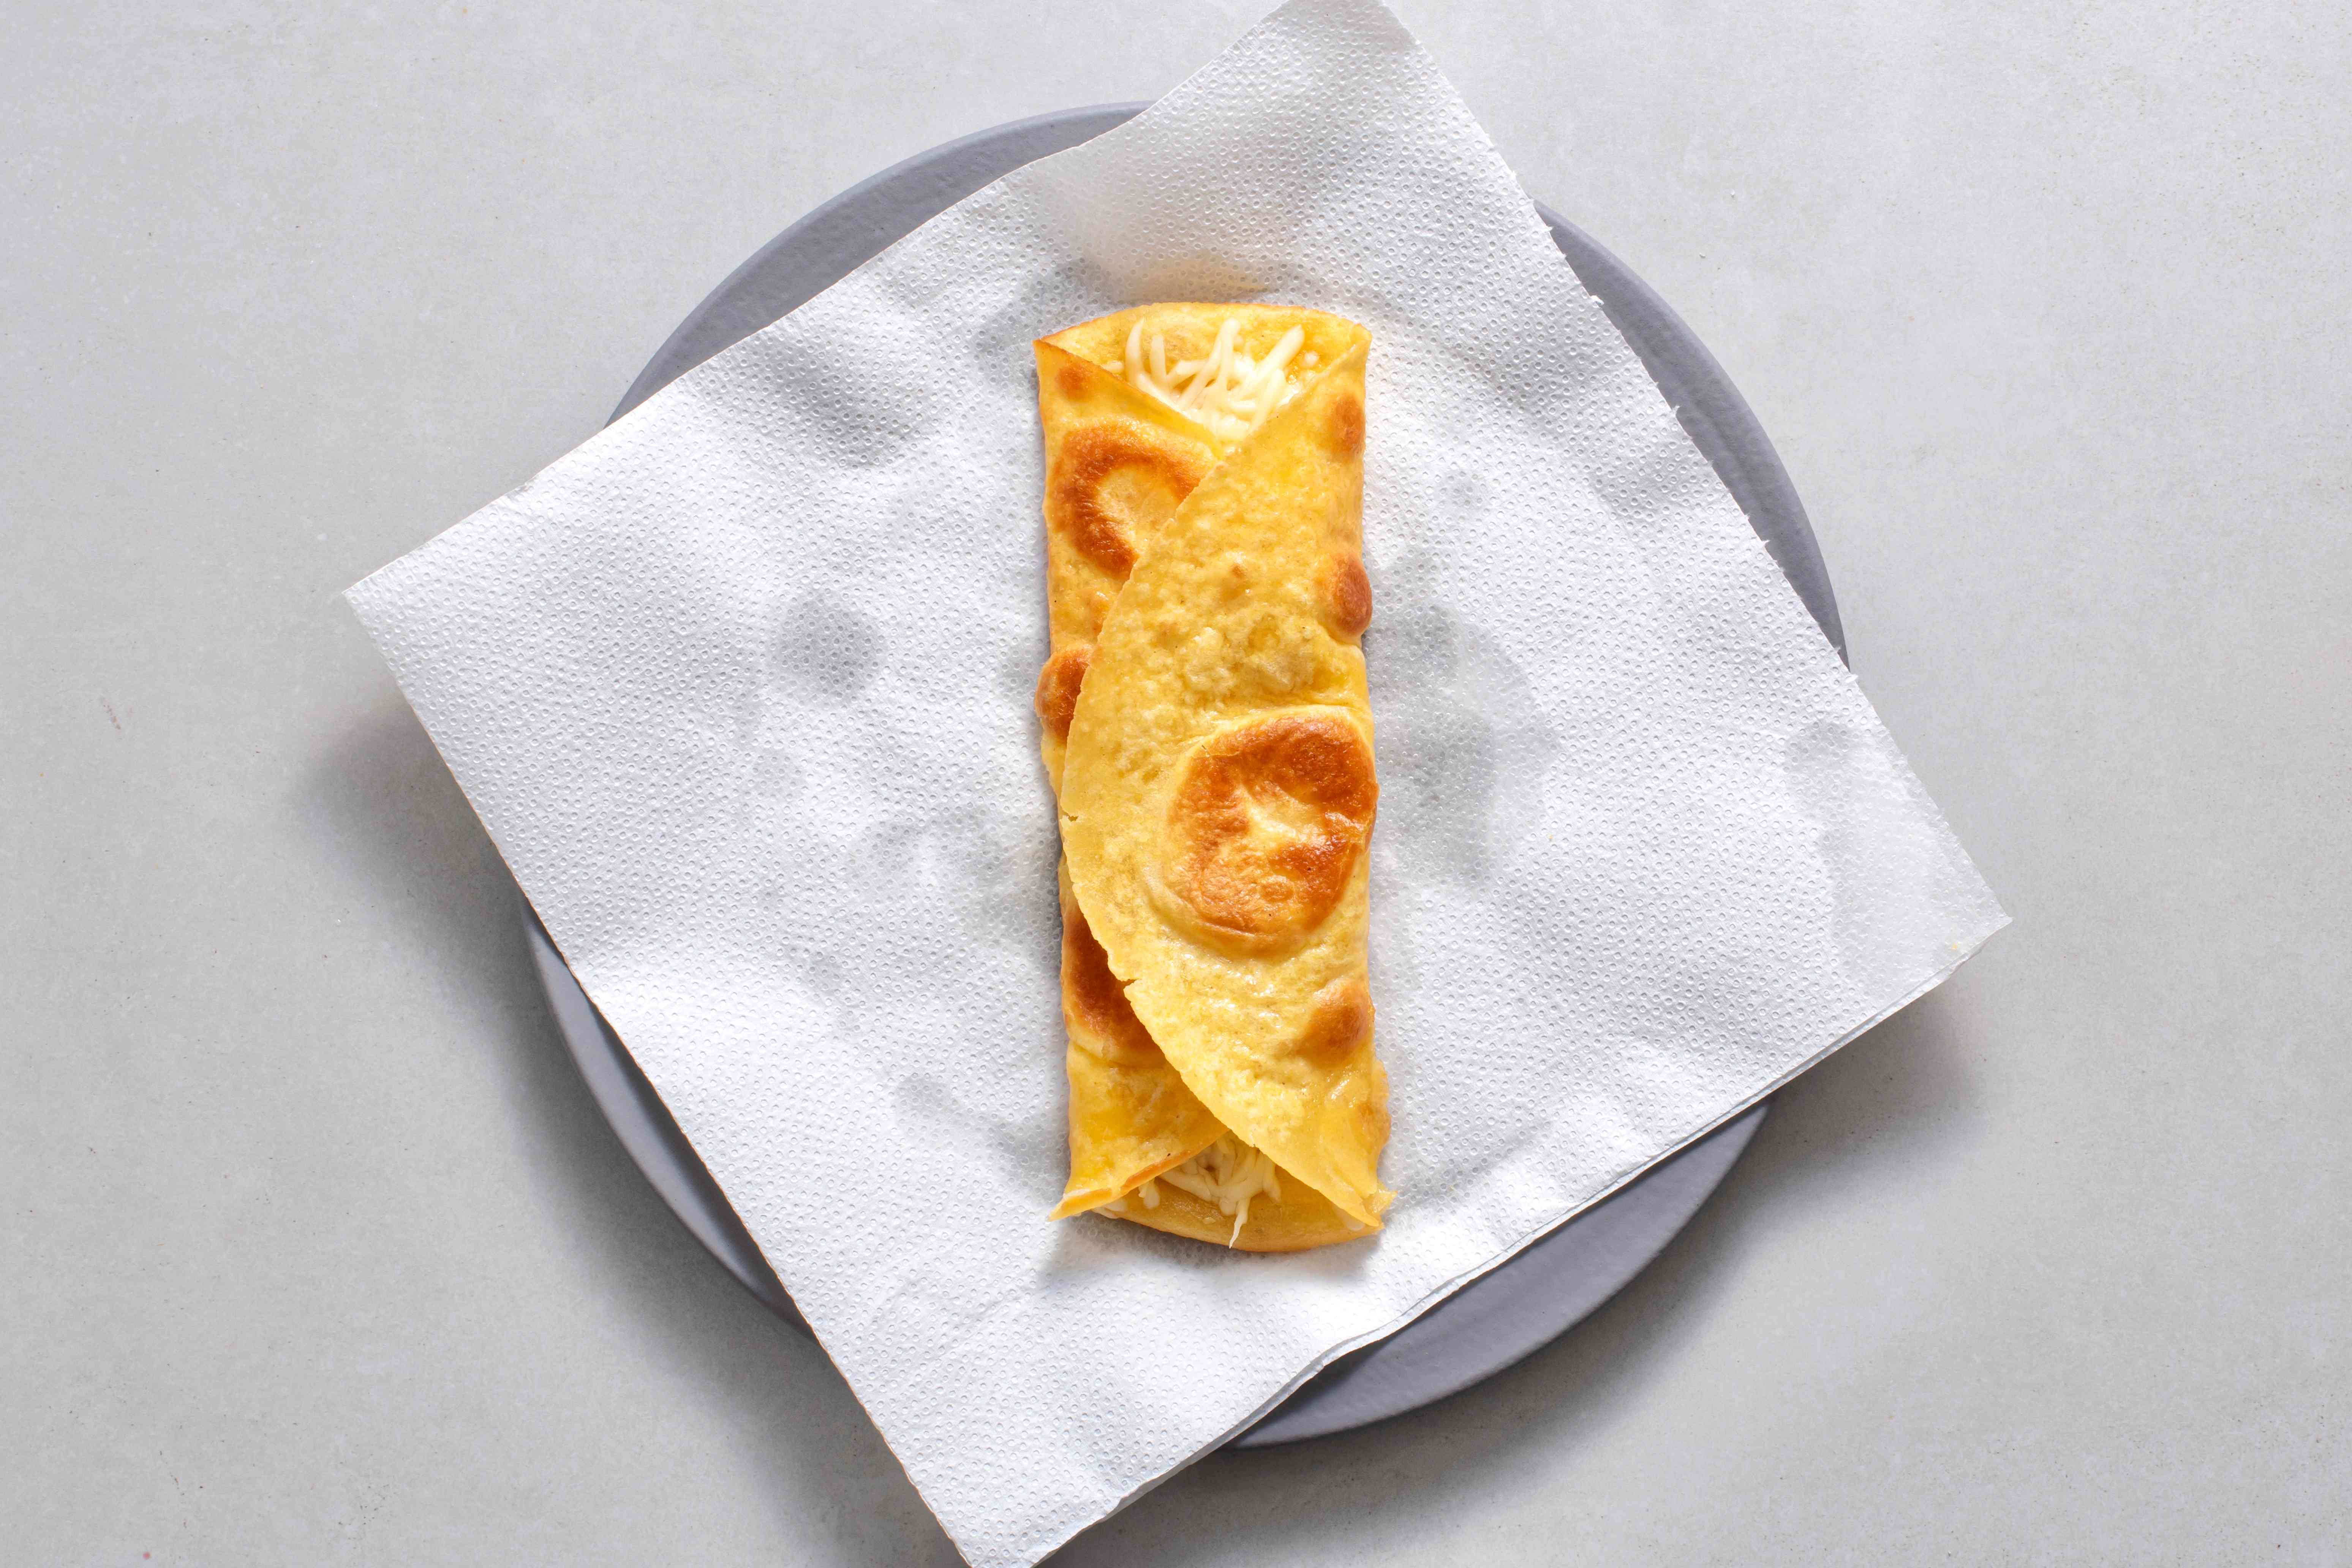 tortilla wrapped around the cheese